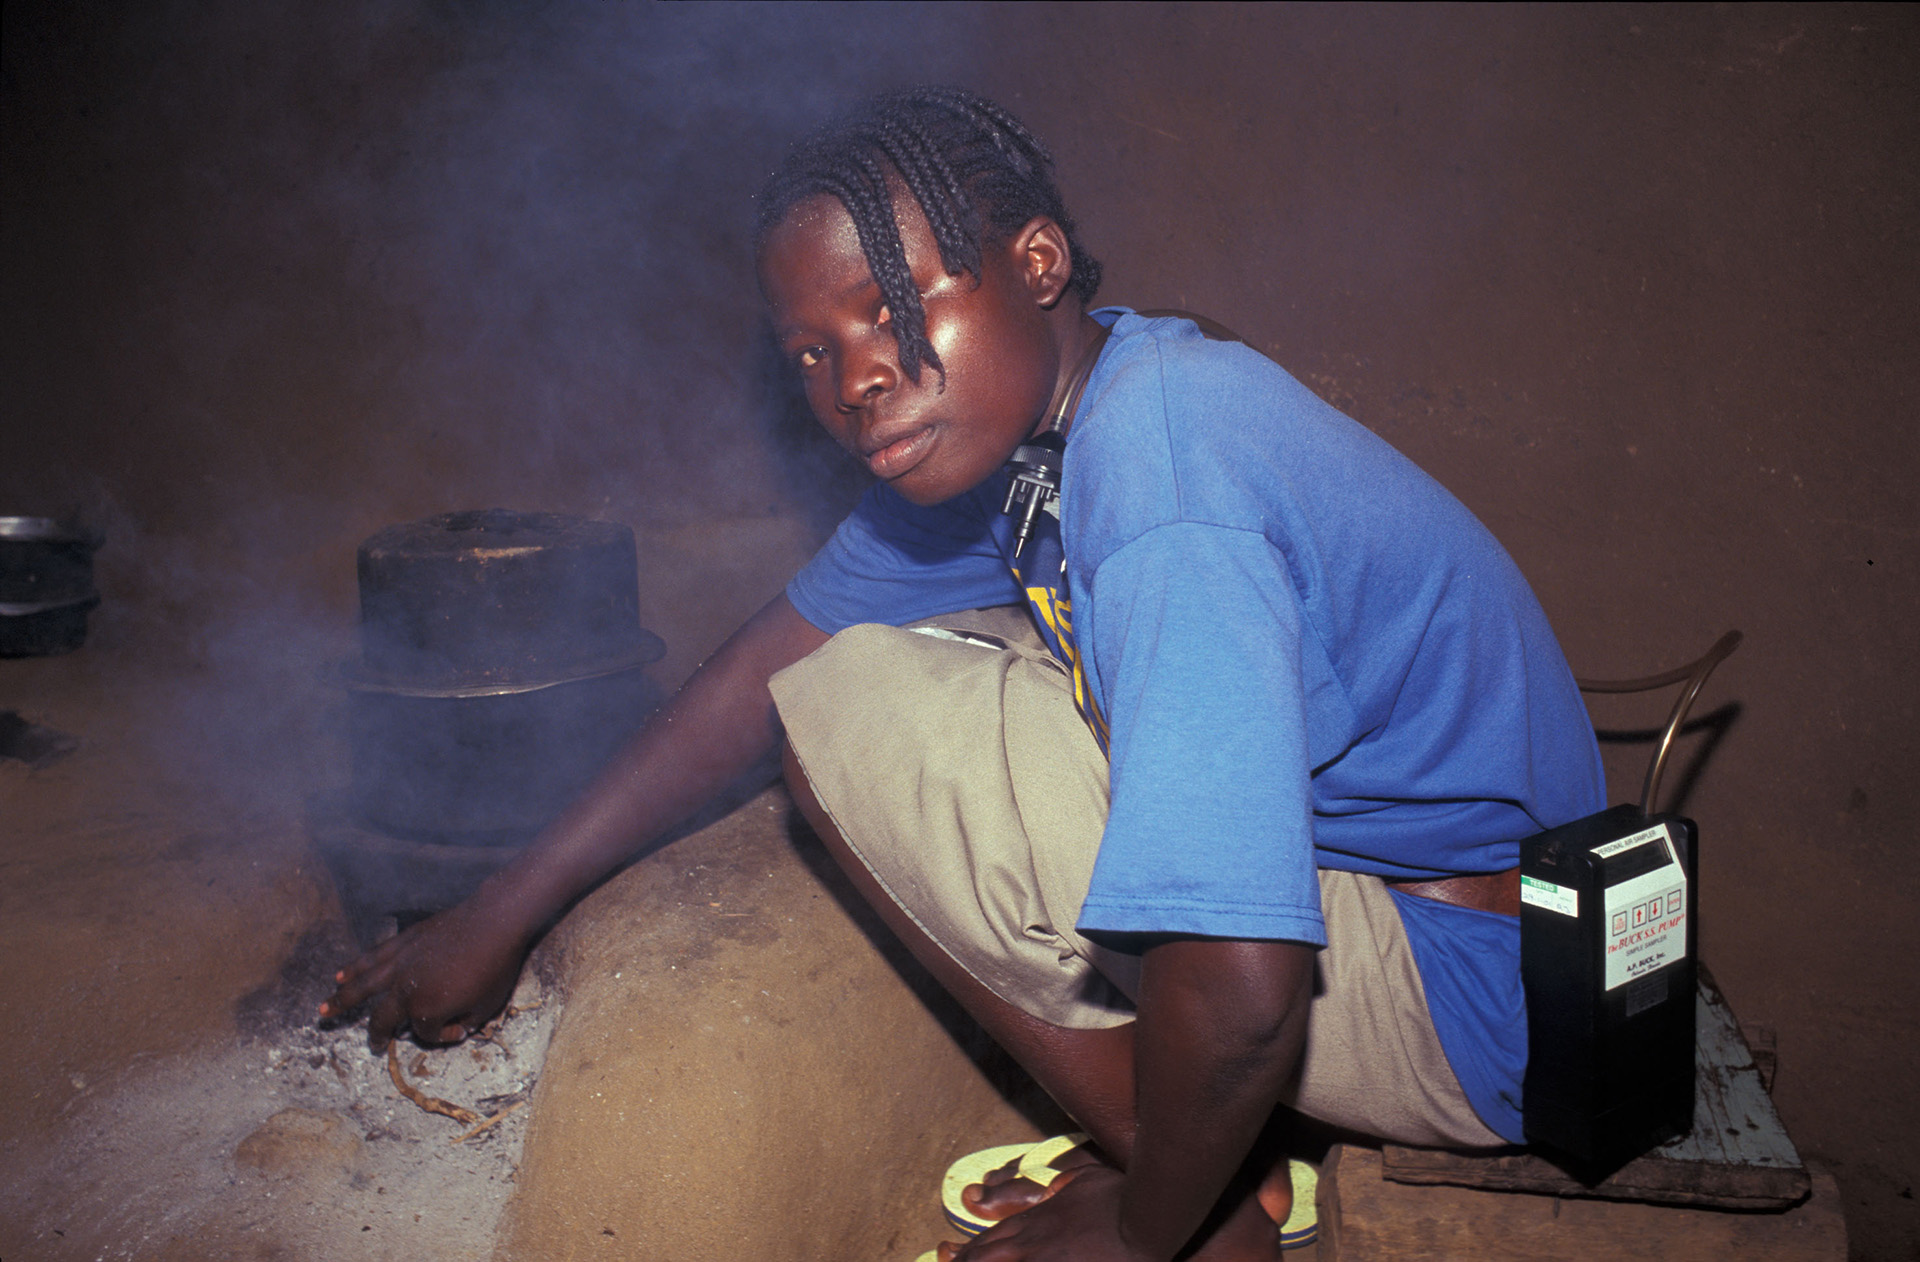 A Kenyan woman wearing a pump and cyclone used for sampling the air she is breathing in order to measure exposure to small particulate matter